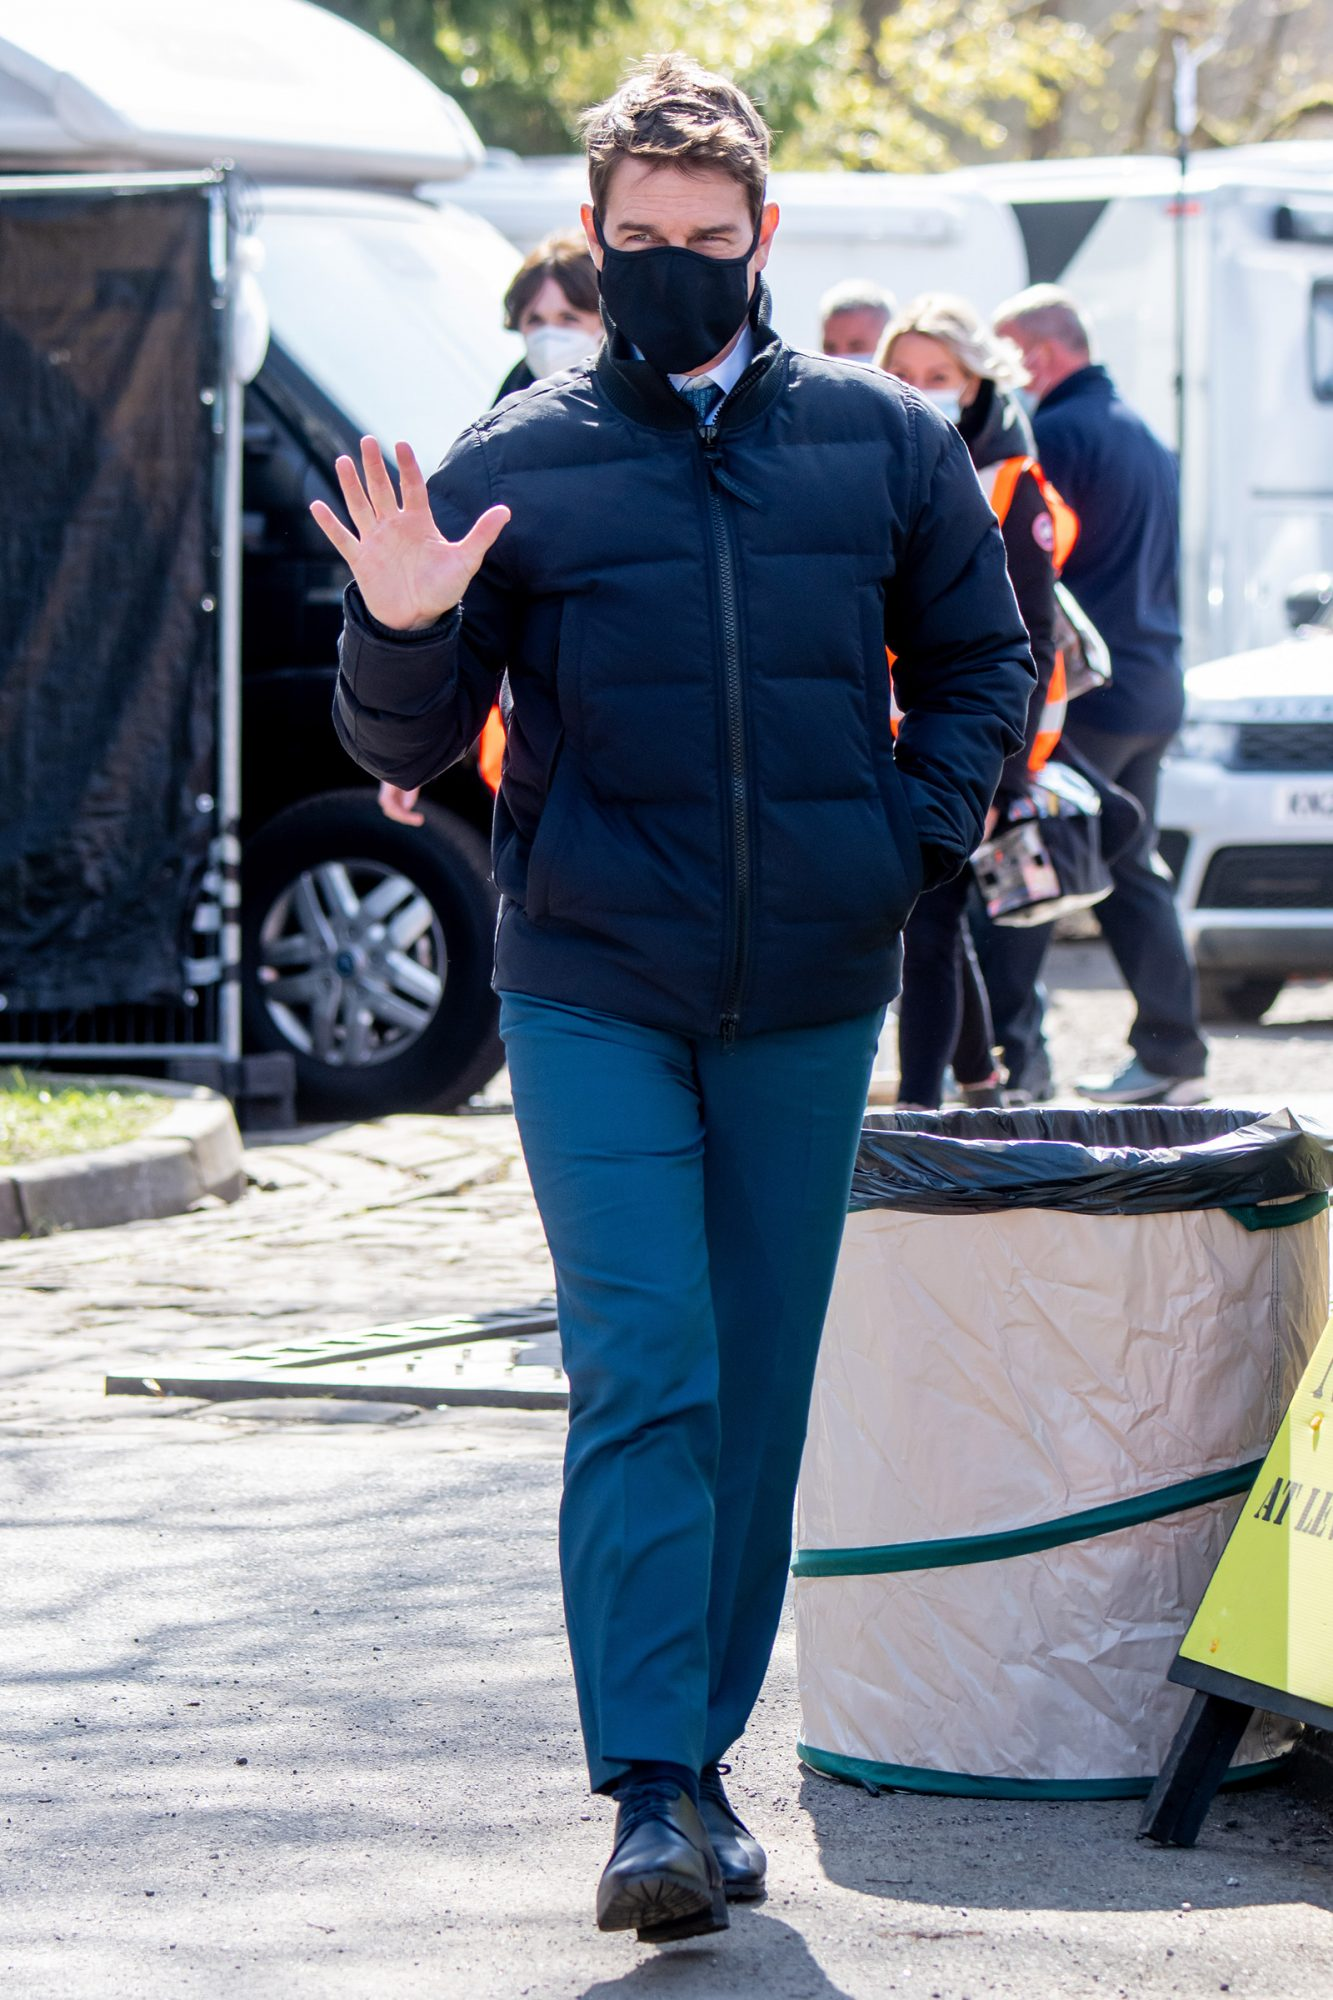 Tom Cruise and Hayley Atwell are seen on the set of Mission Impossible 7